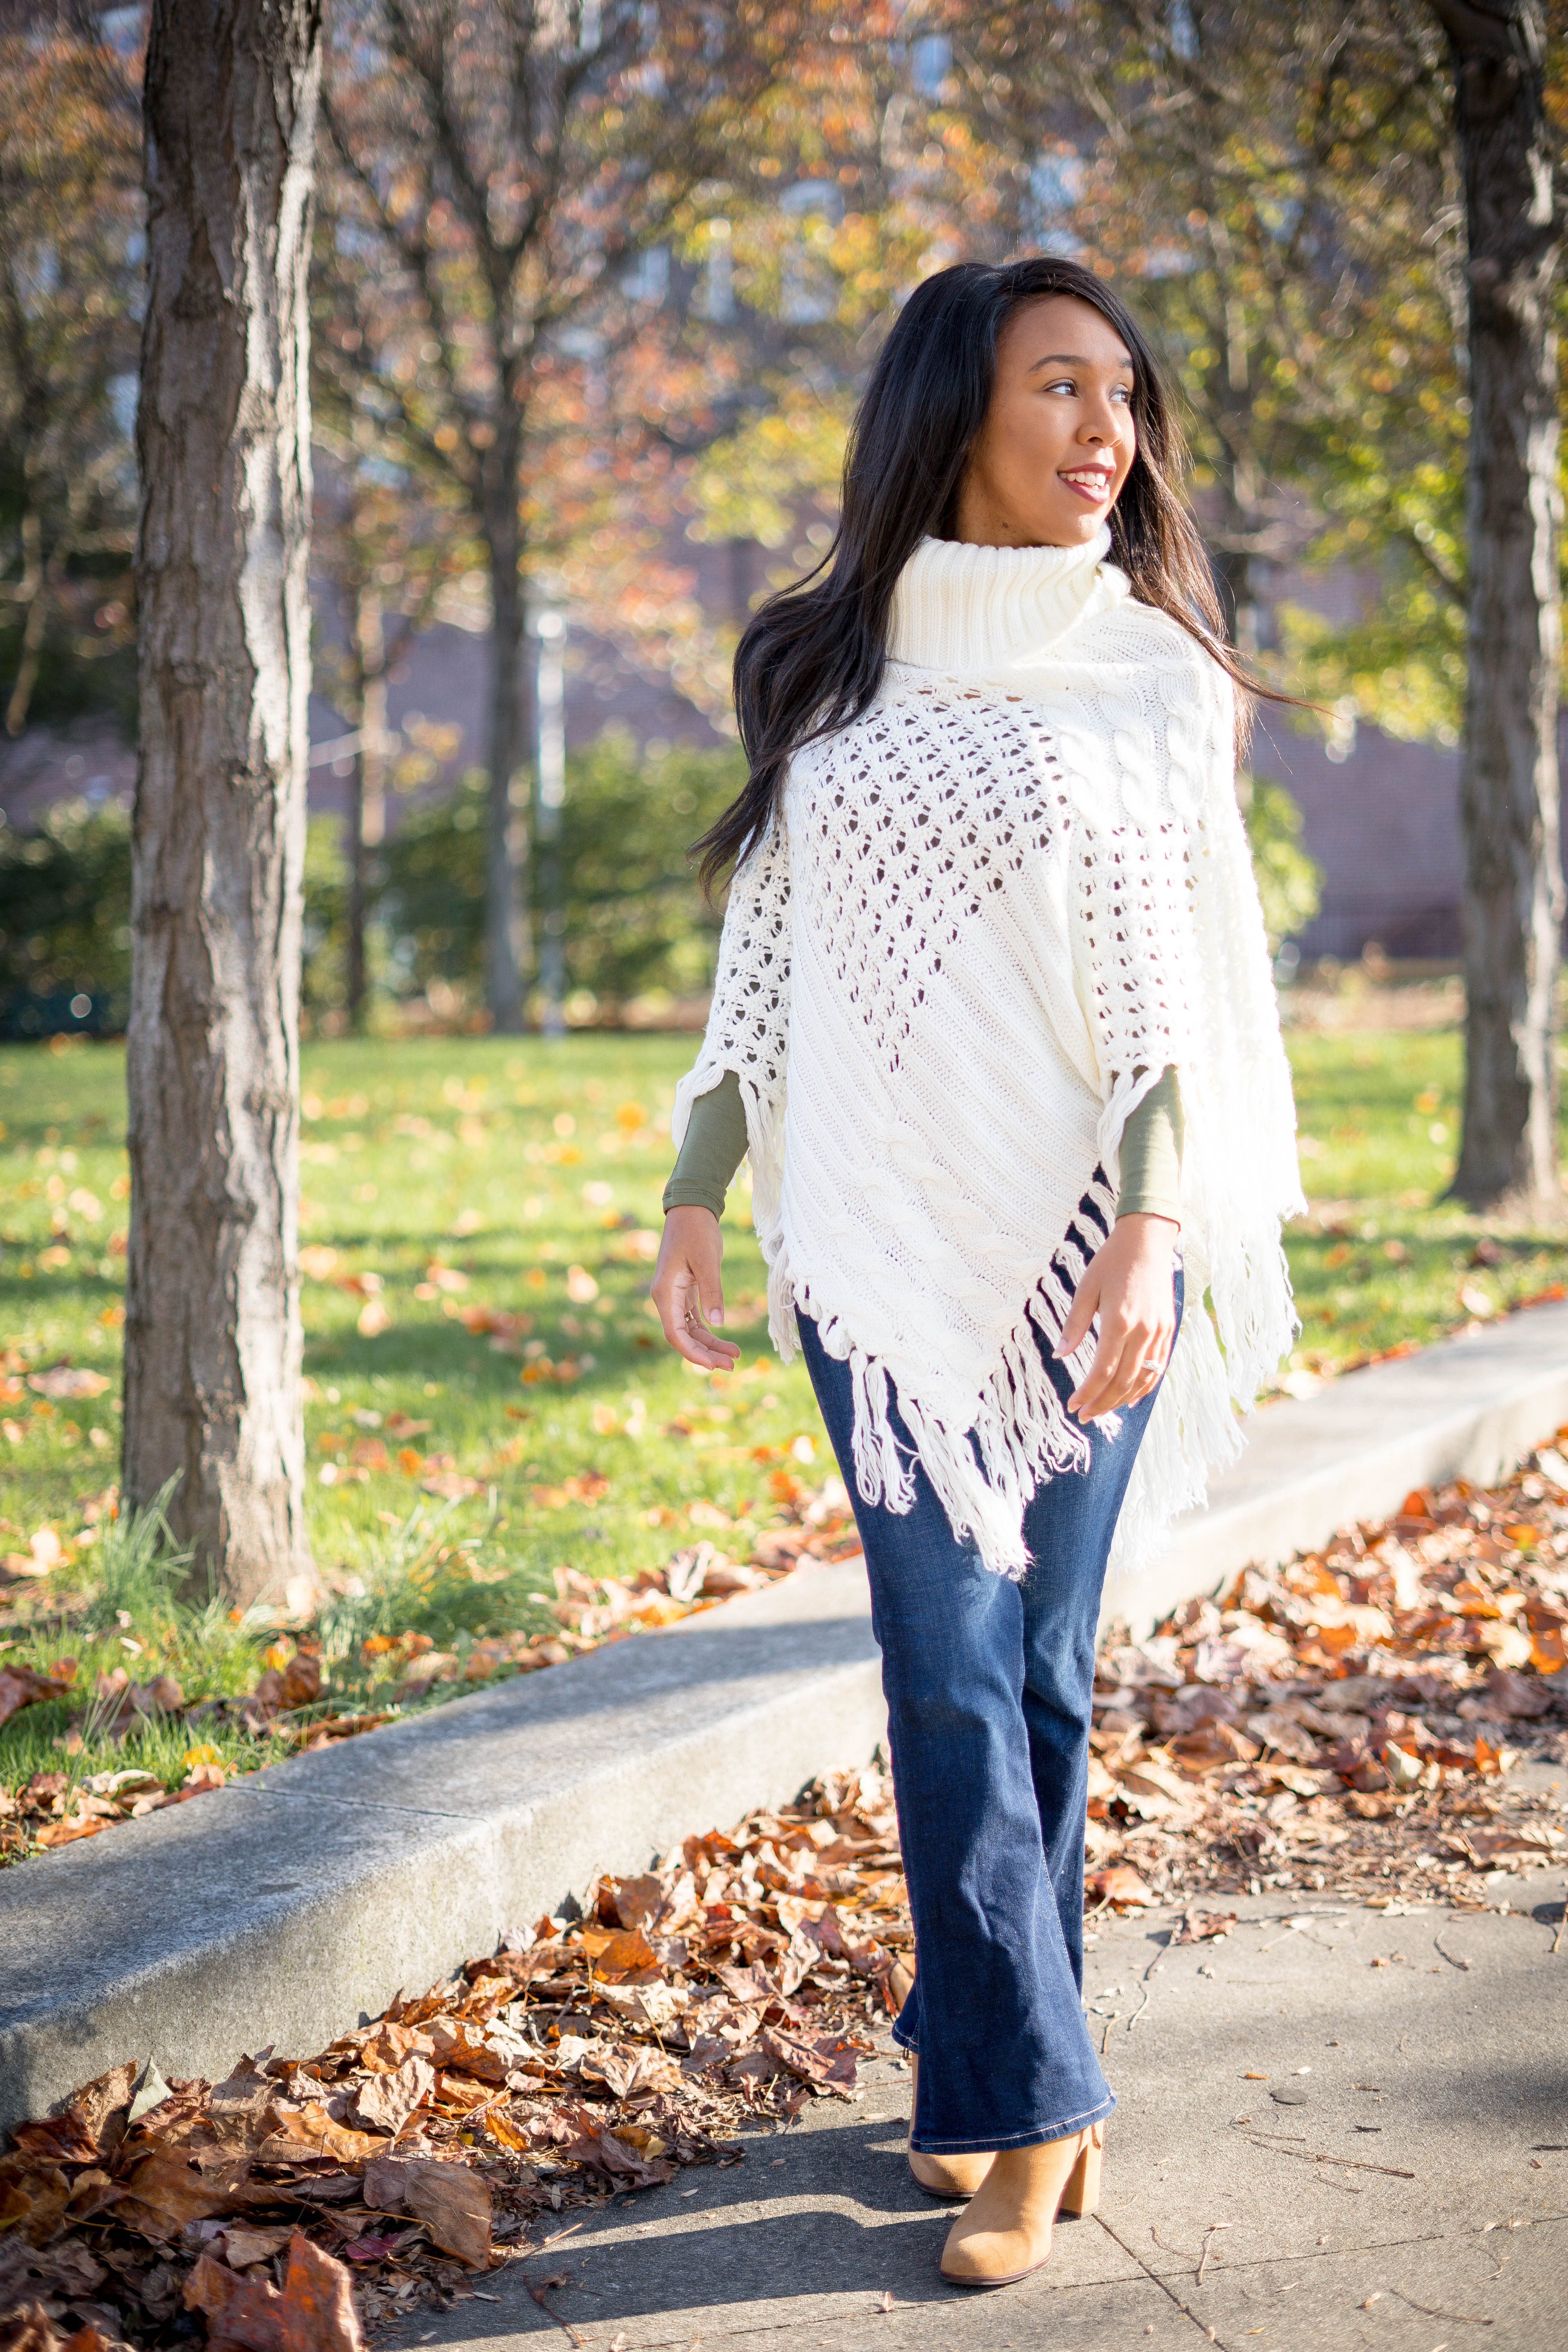 livinglesh how to look taller wearing a poncho with off the shoulder top